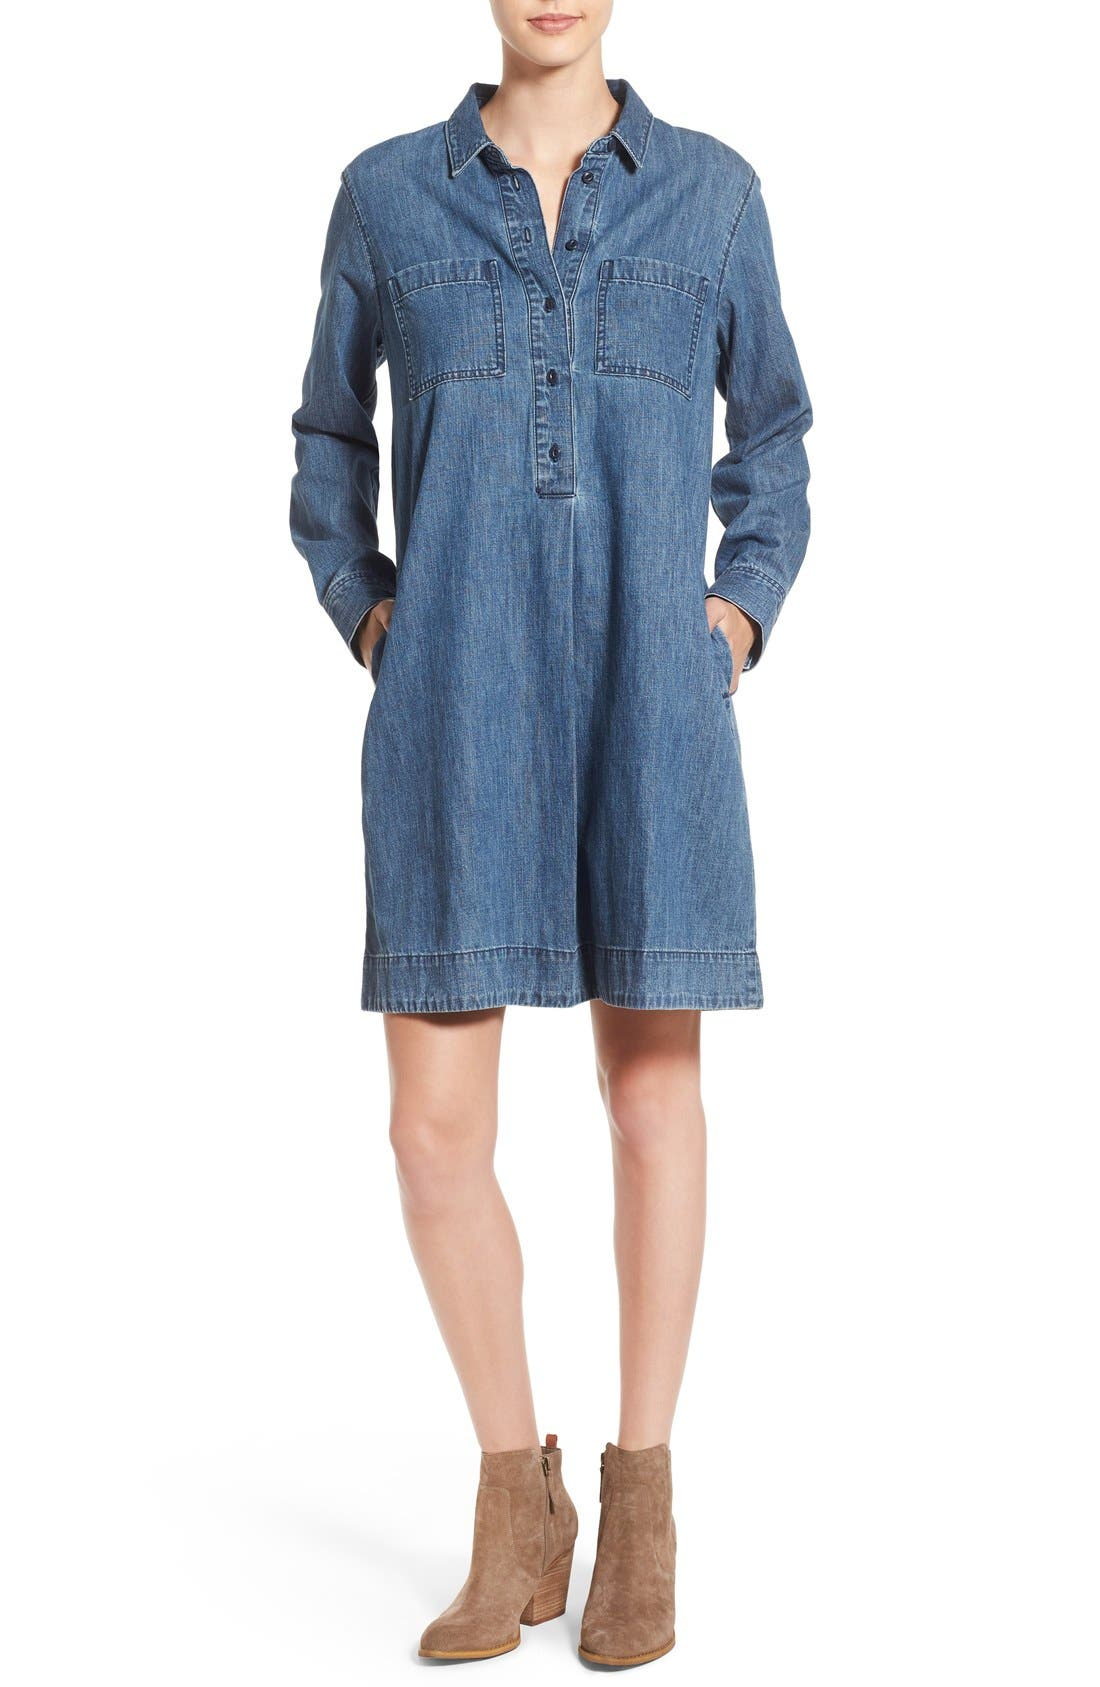 Alternate Image 1 Selected - Madewell Denim Shirtdress